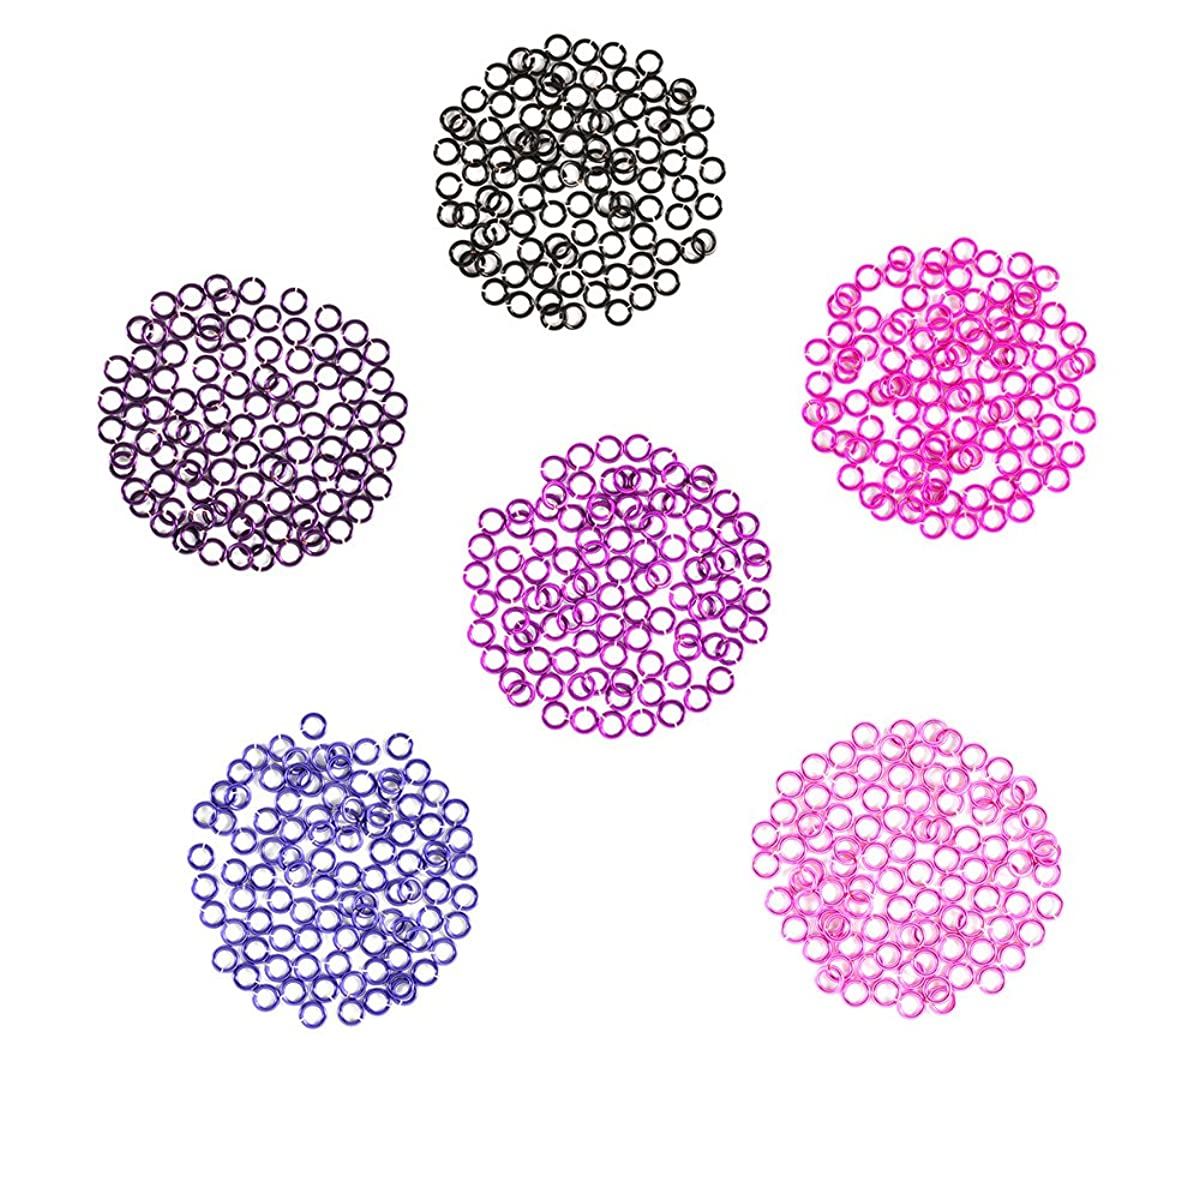 Berry Patch - Enameled Copper Jump Rings – 20 Gauge – 4.0mm ID - 600 Rings - Amethyst, Black, Fuchsia, Hot Pink, Lavender, Purple